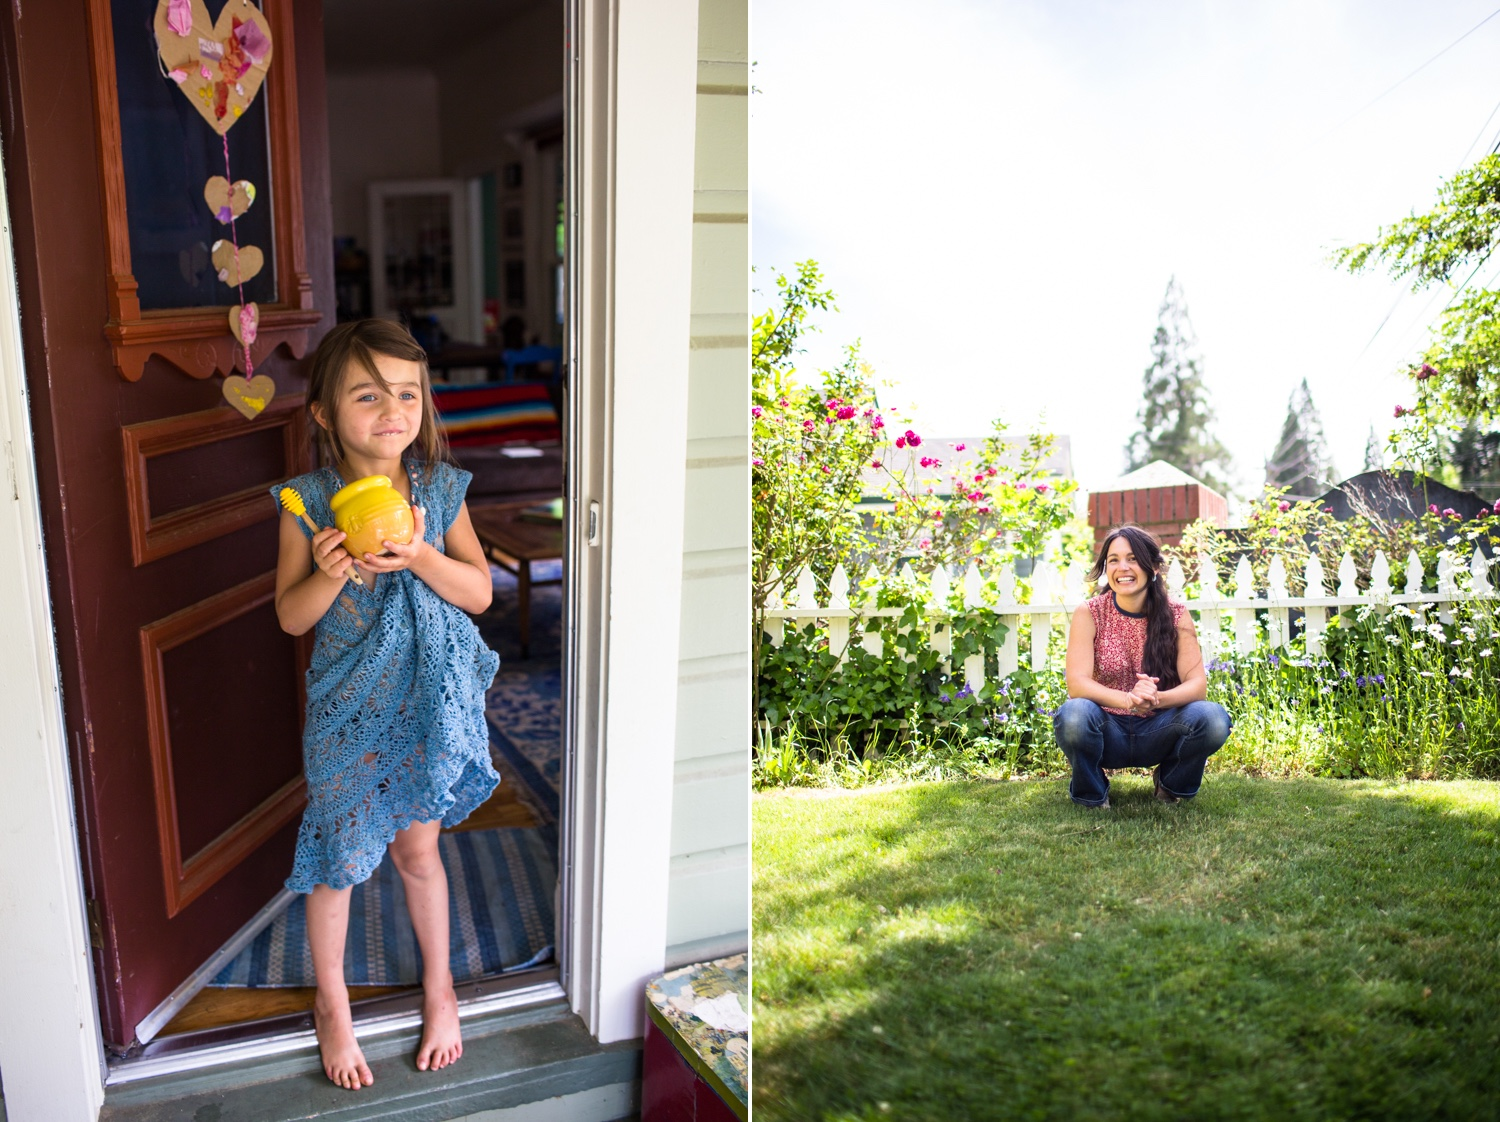 Nevada City Sacramento grass valley family photographer natural light documentary